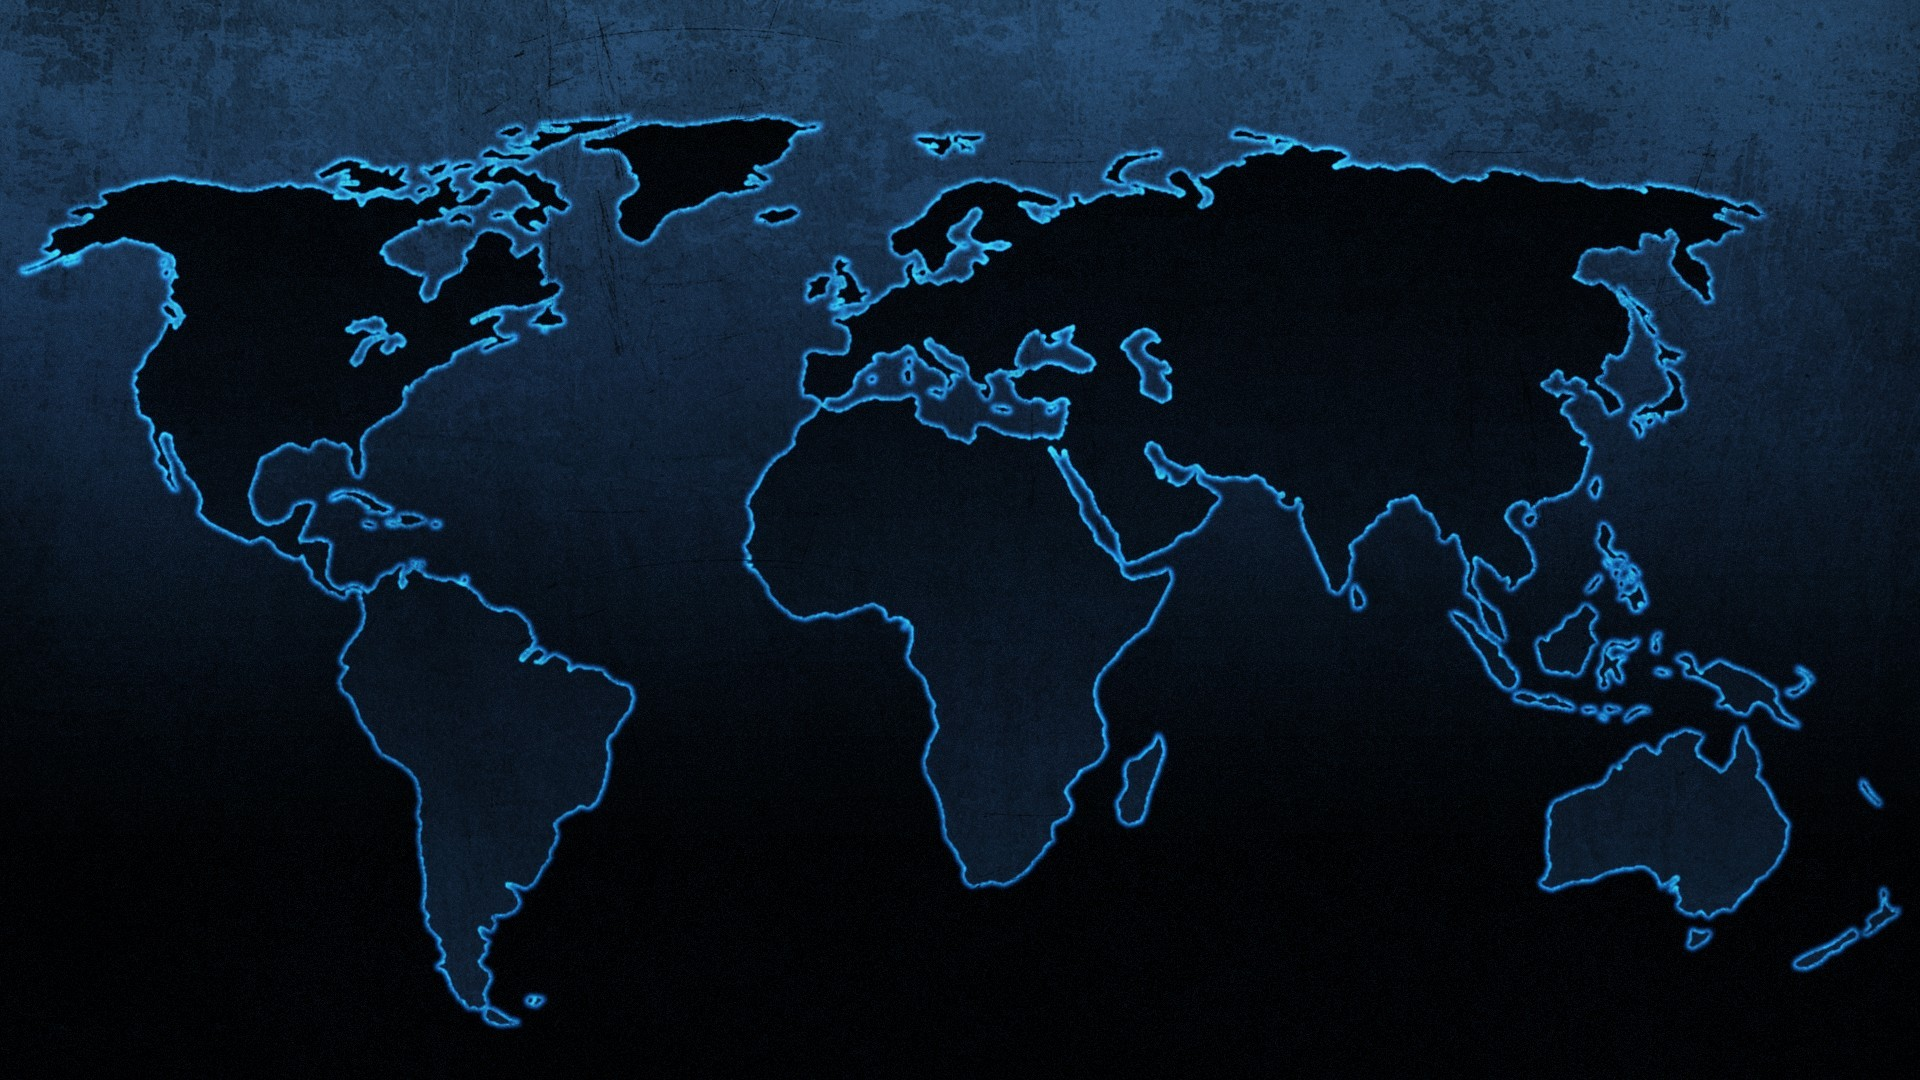 World map wallpaper 1920x1080 55897 World map wallpaper